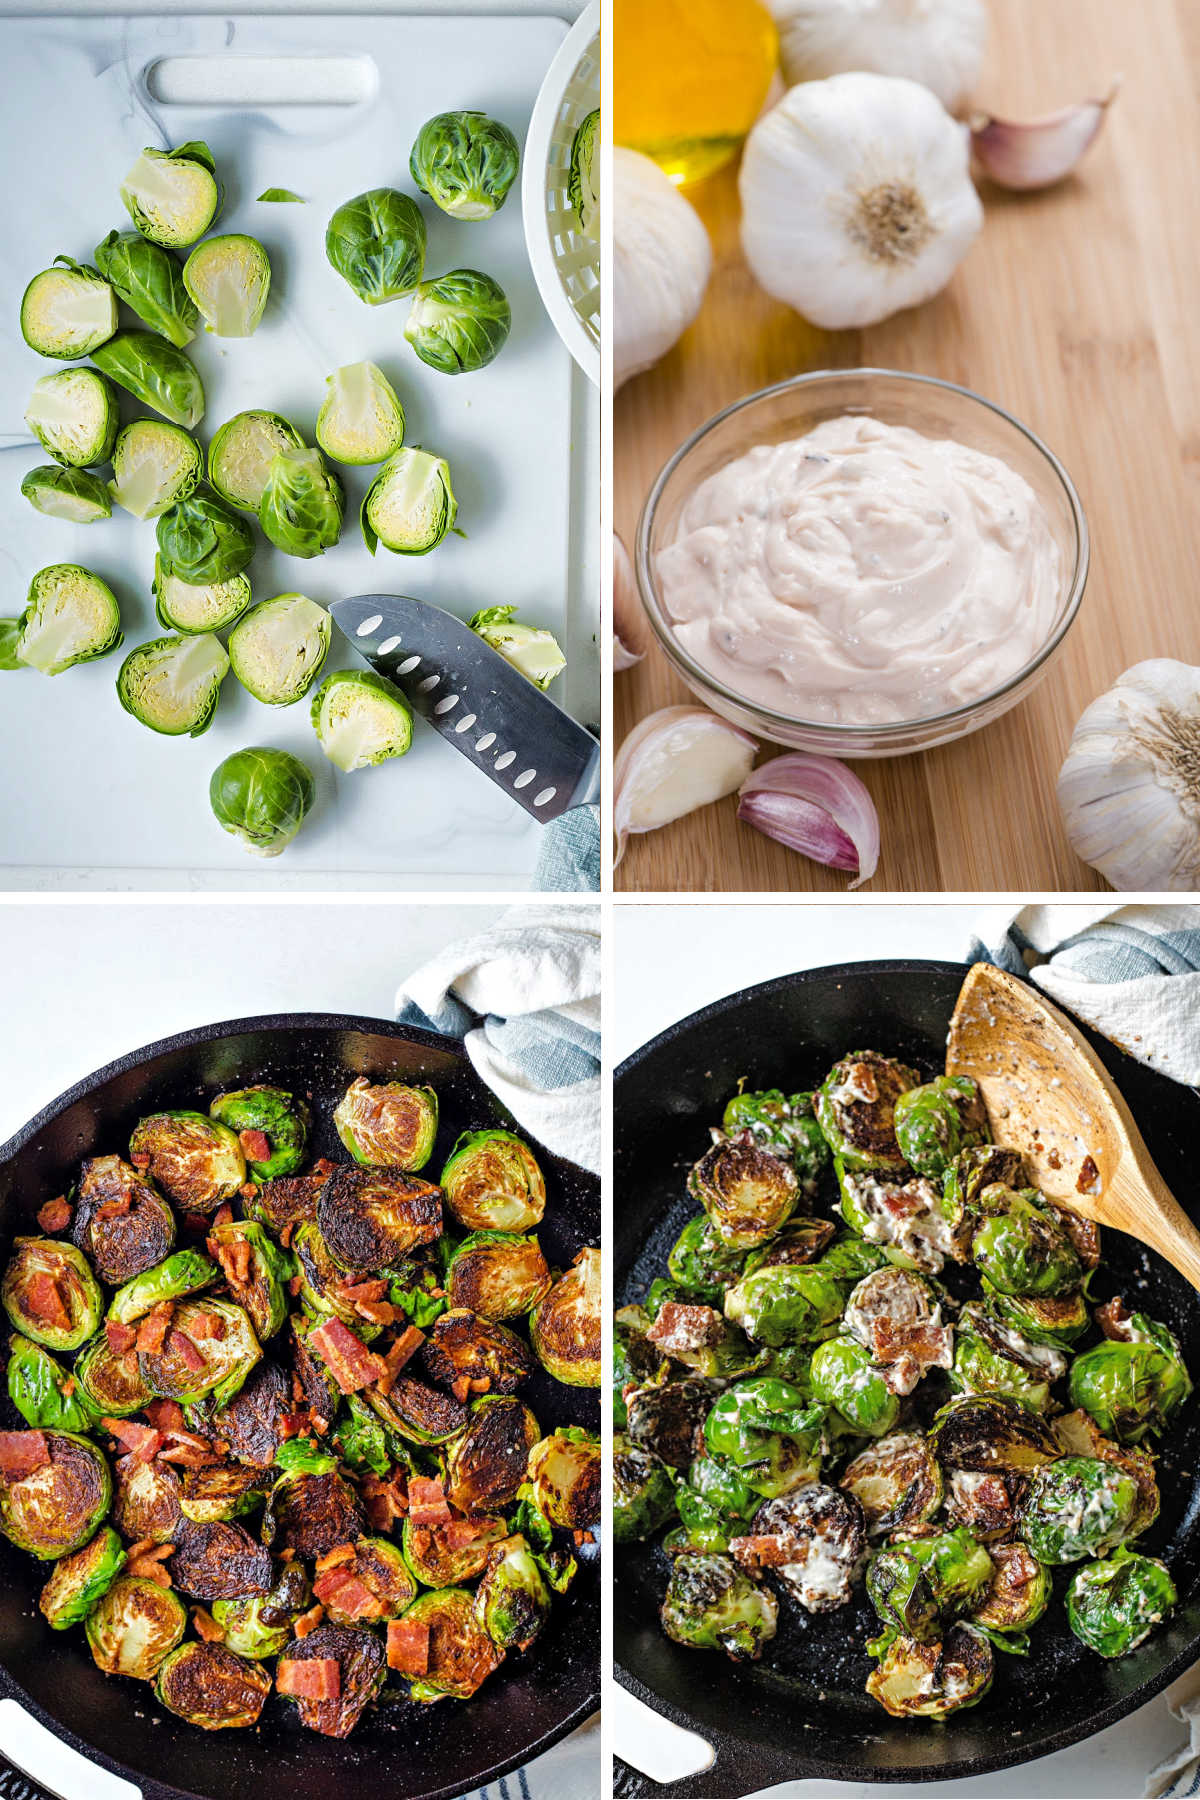 process steps for making caramelized brussels sprouts: slice brussels sprouts in half; make aioli; add crumbled bacon to skillet with brussels sprouts; stir in aioli.